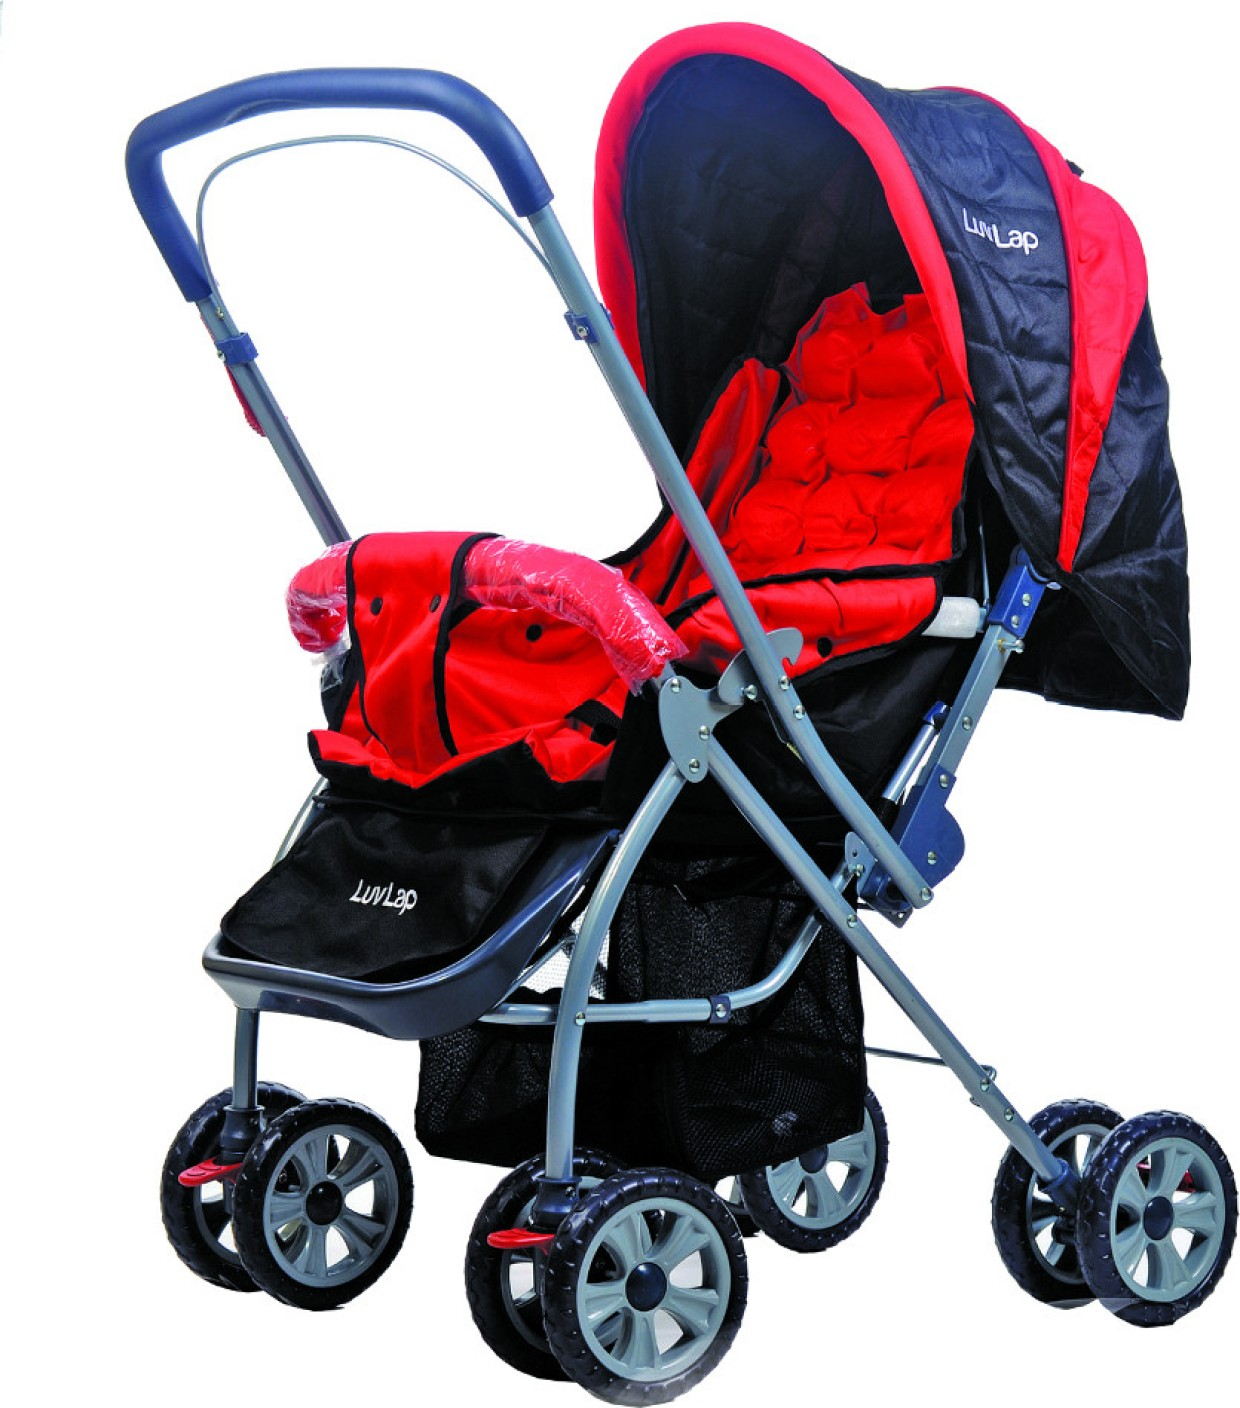 Luvlap Starshine Baby Stroller Buy Stroller For 6 24